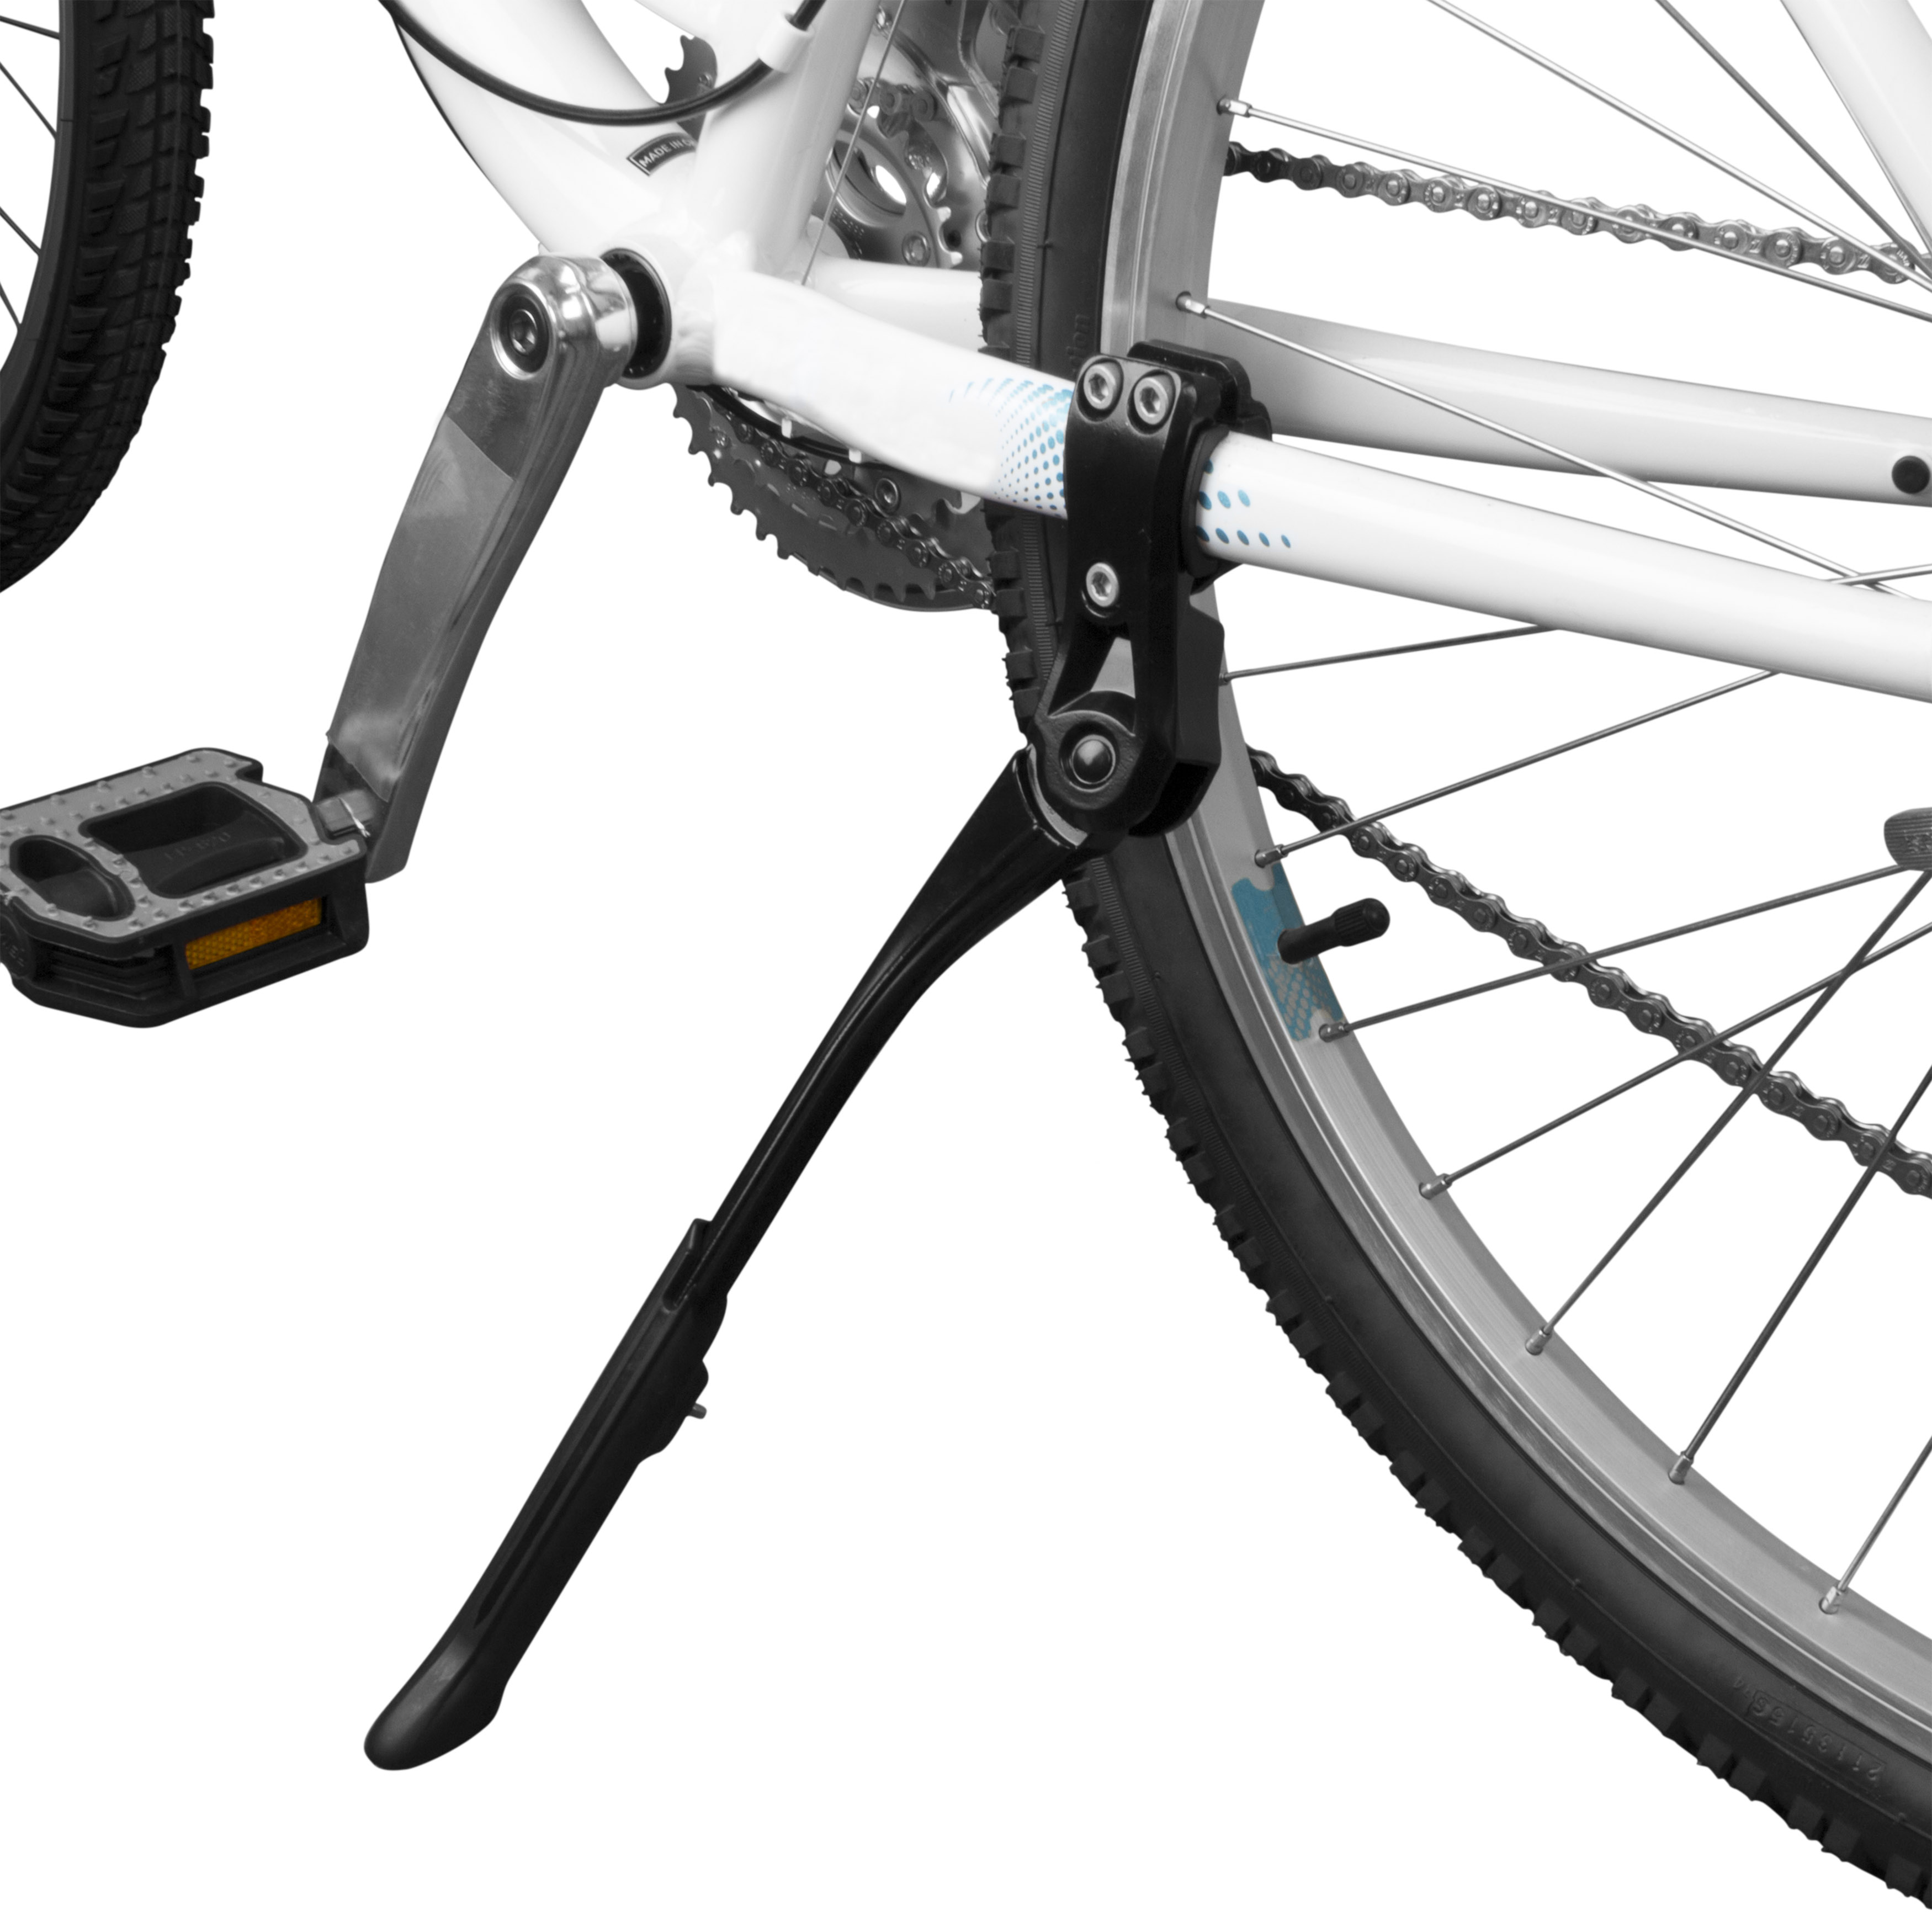 BV Alloy Adjustable Height Rear Kickstand for Bike